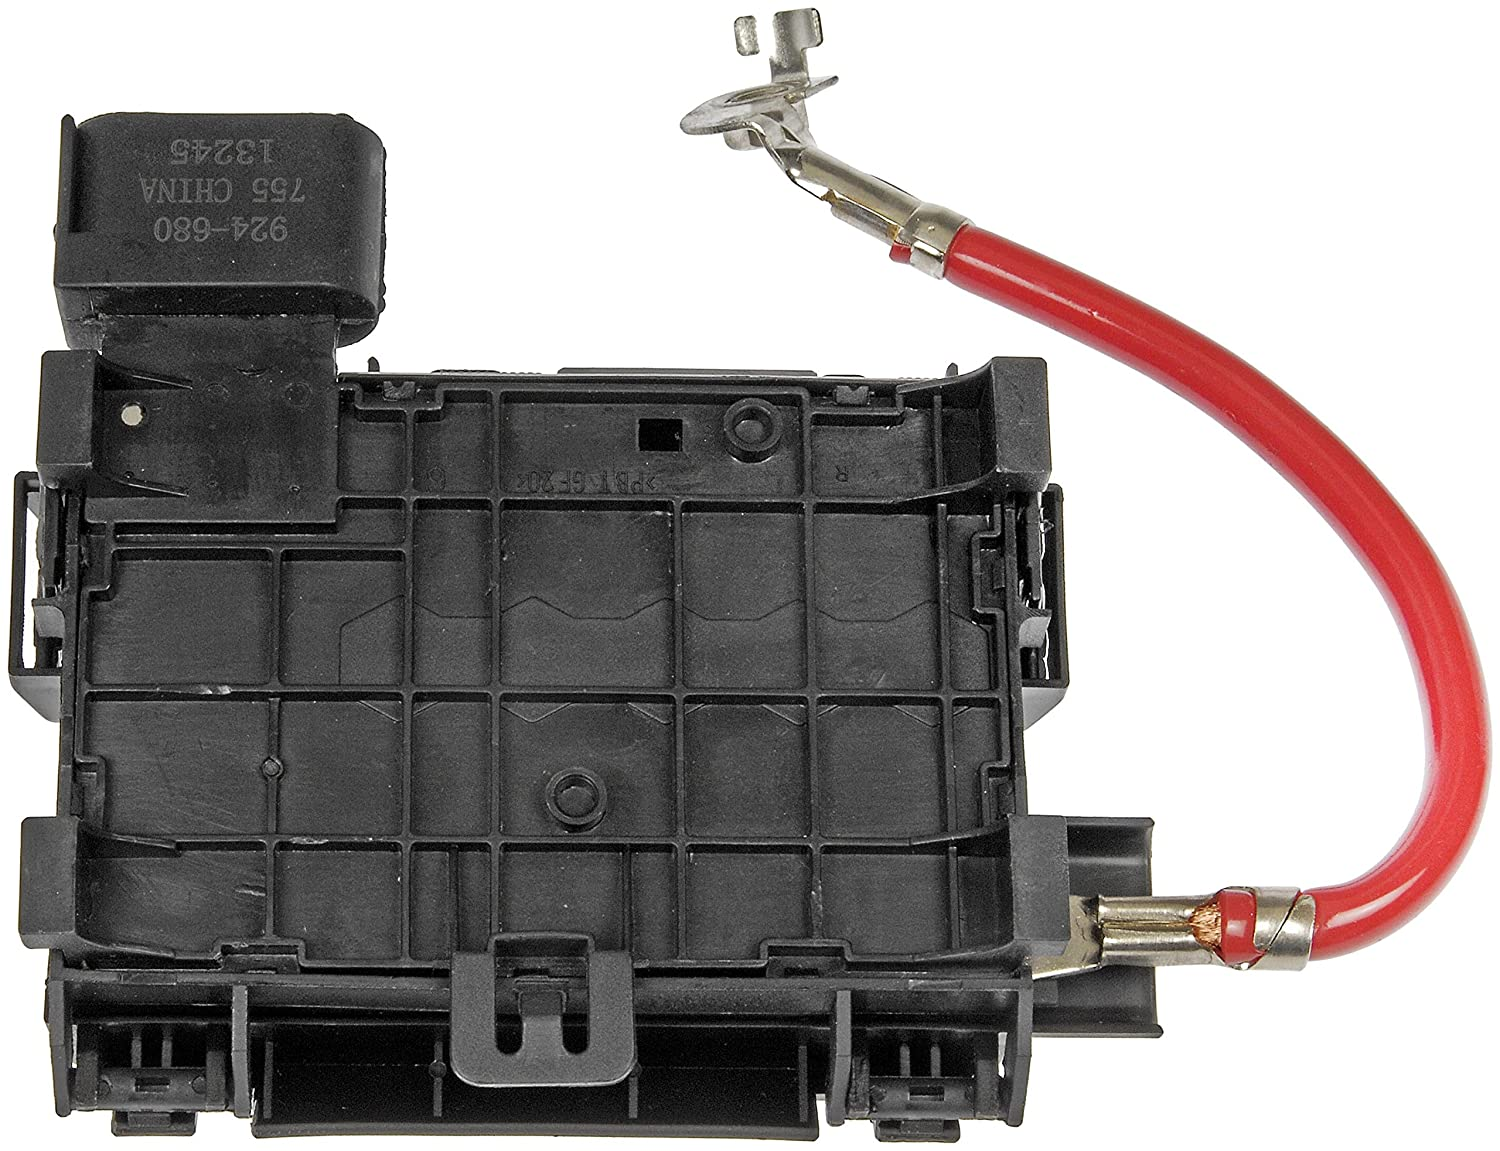 Dorman 924 680 High Voltage Fuse Box Automotive 2006 Jetta Connectors